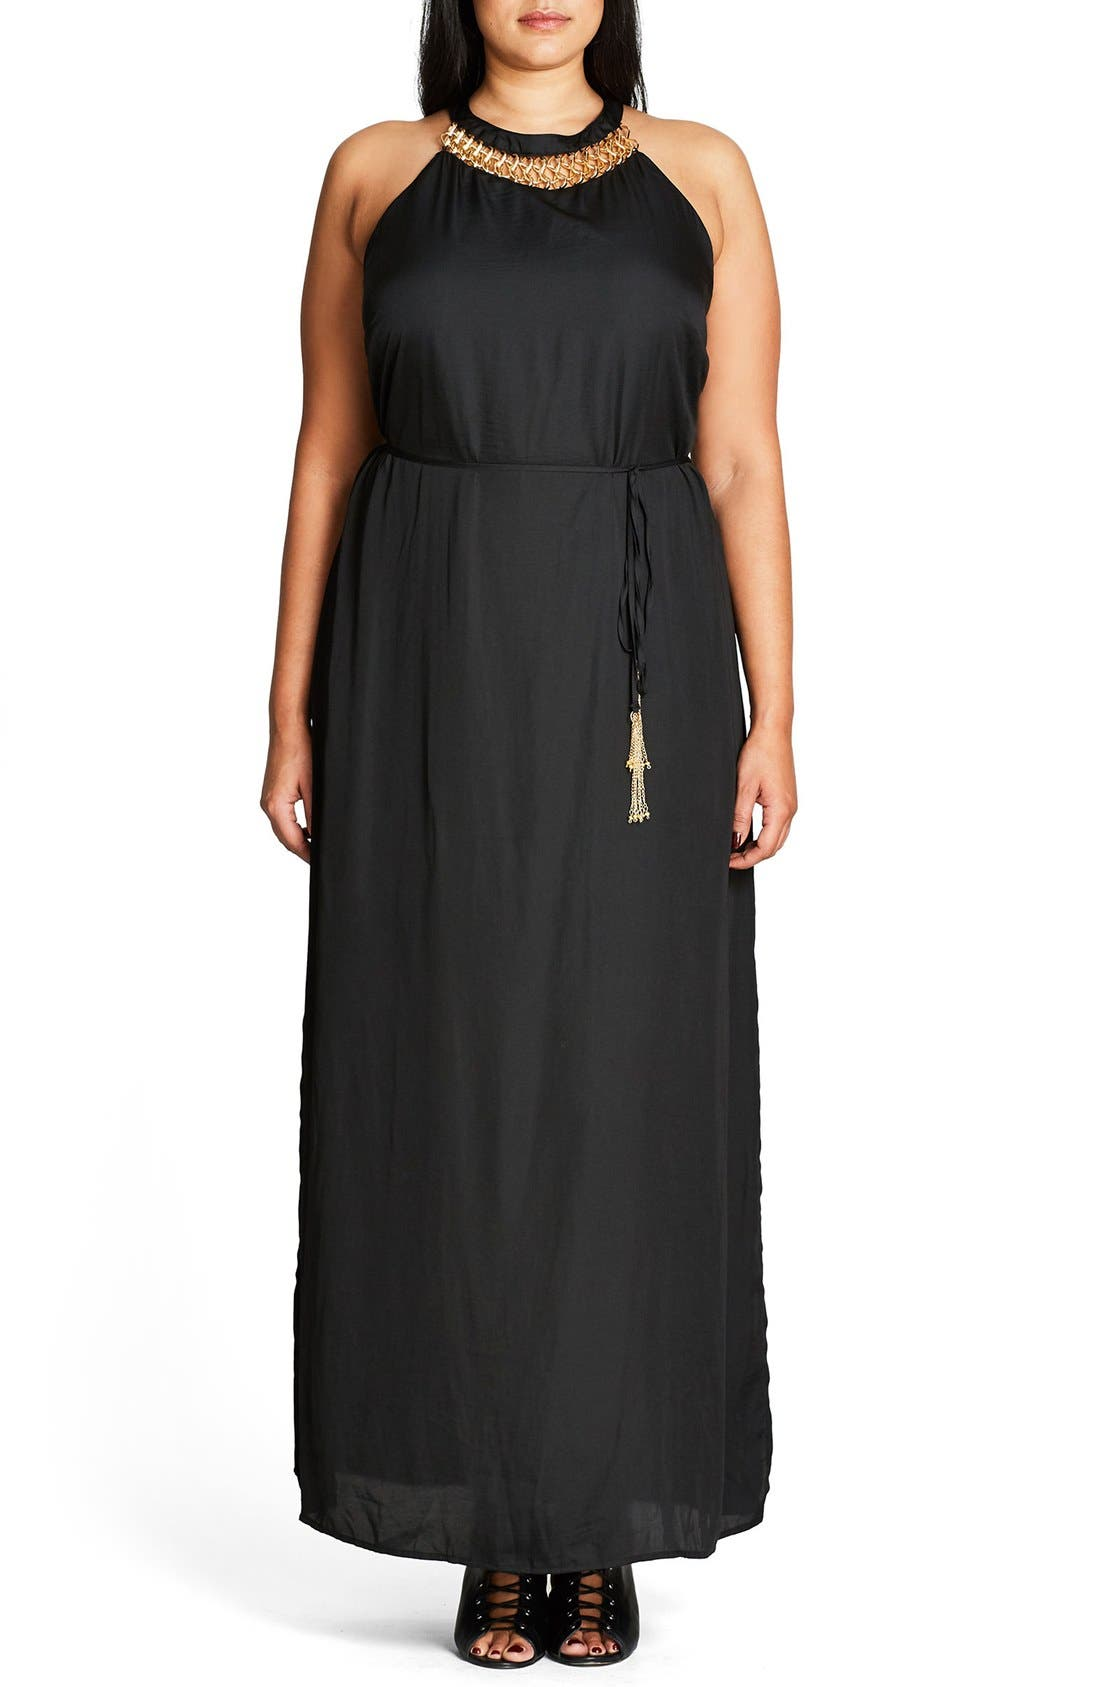 Ring Detail Maxi Dress,                             Main thumbnail 1, color,                             001